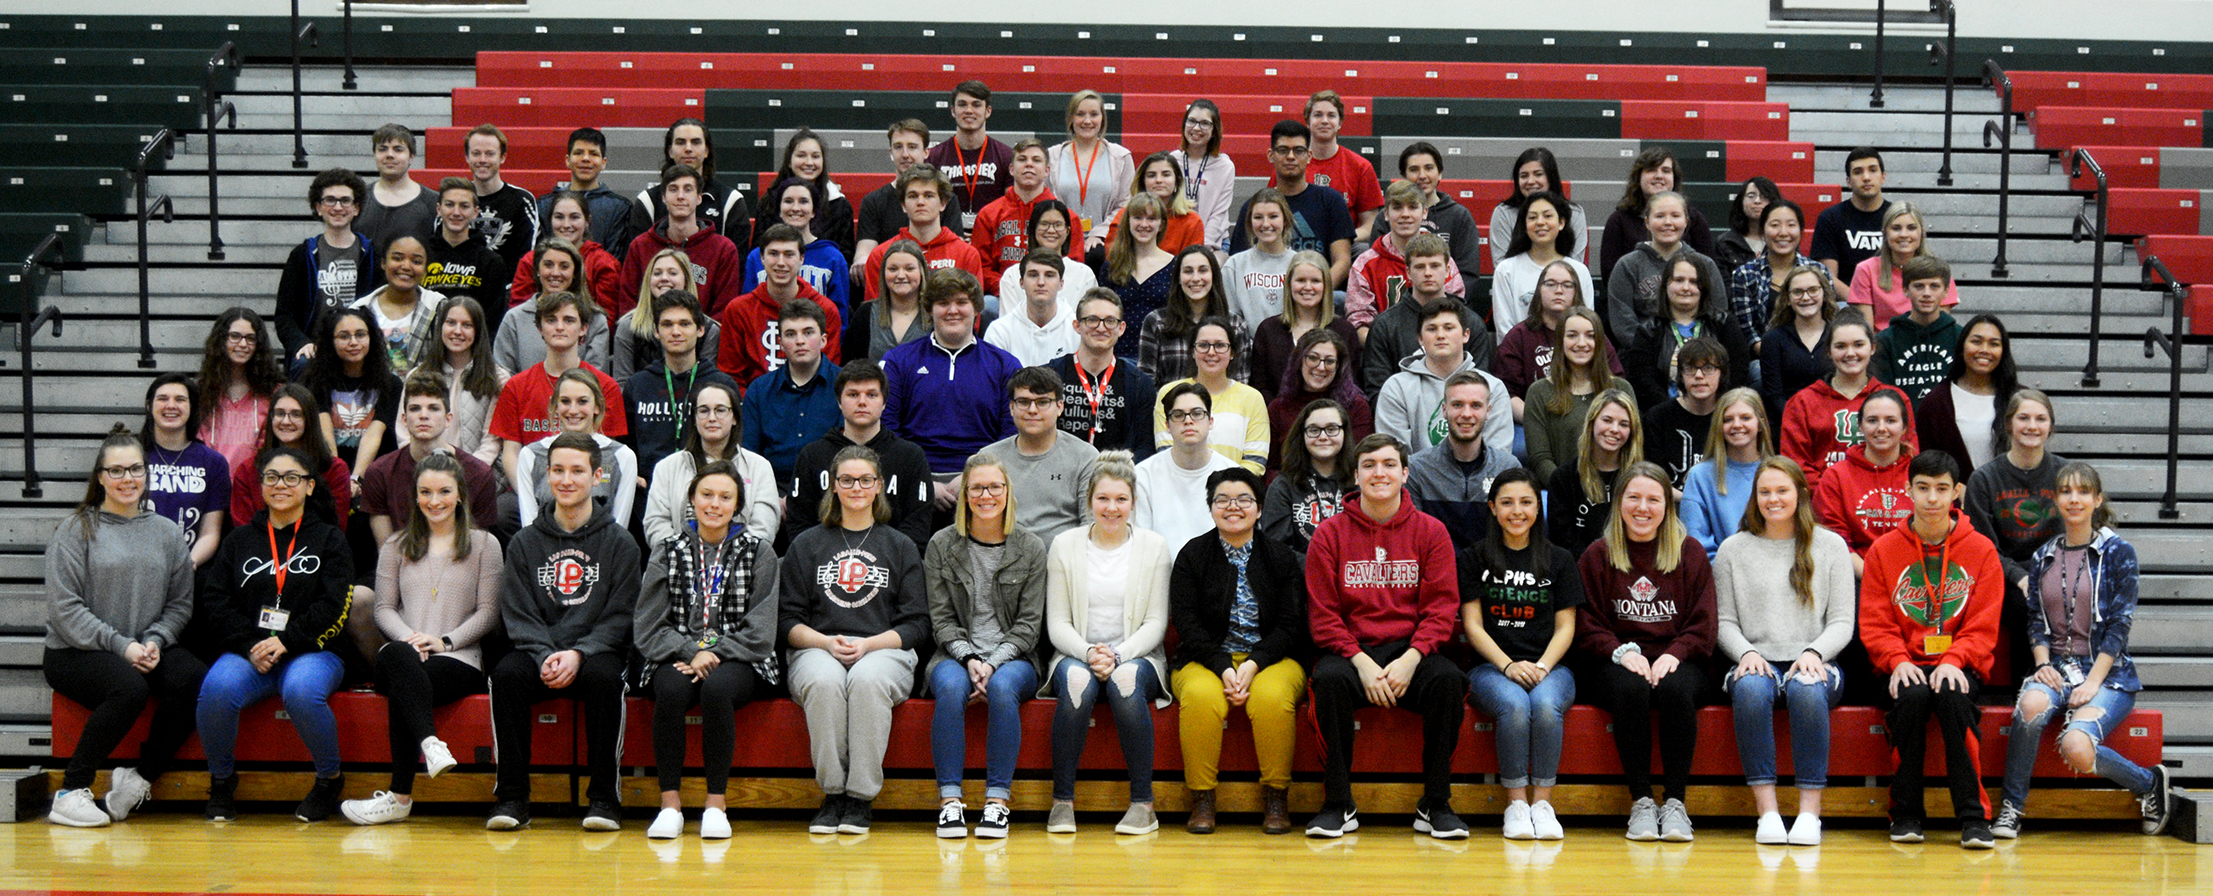 Image of juniors with 5 semester high scholarship honors.